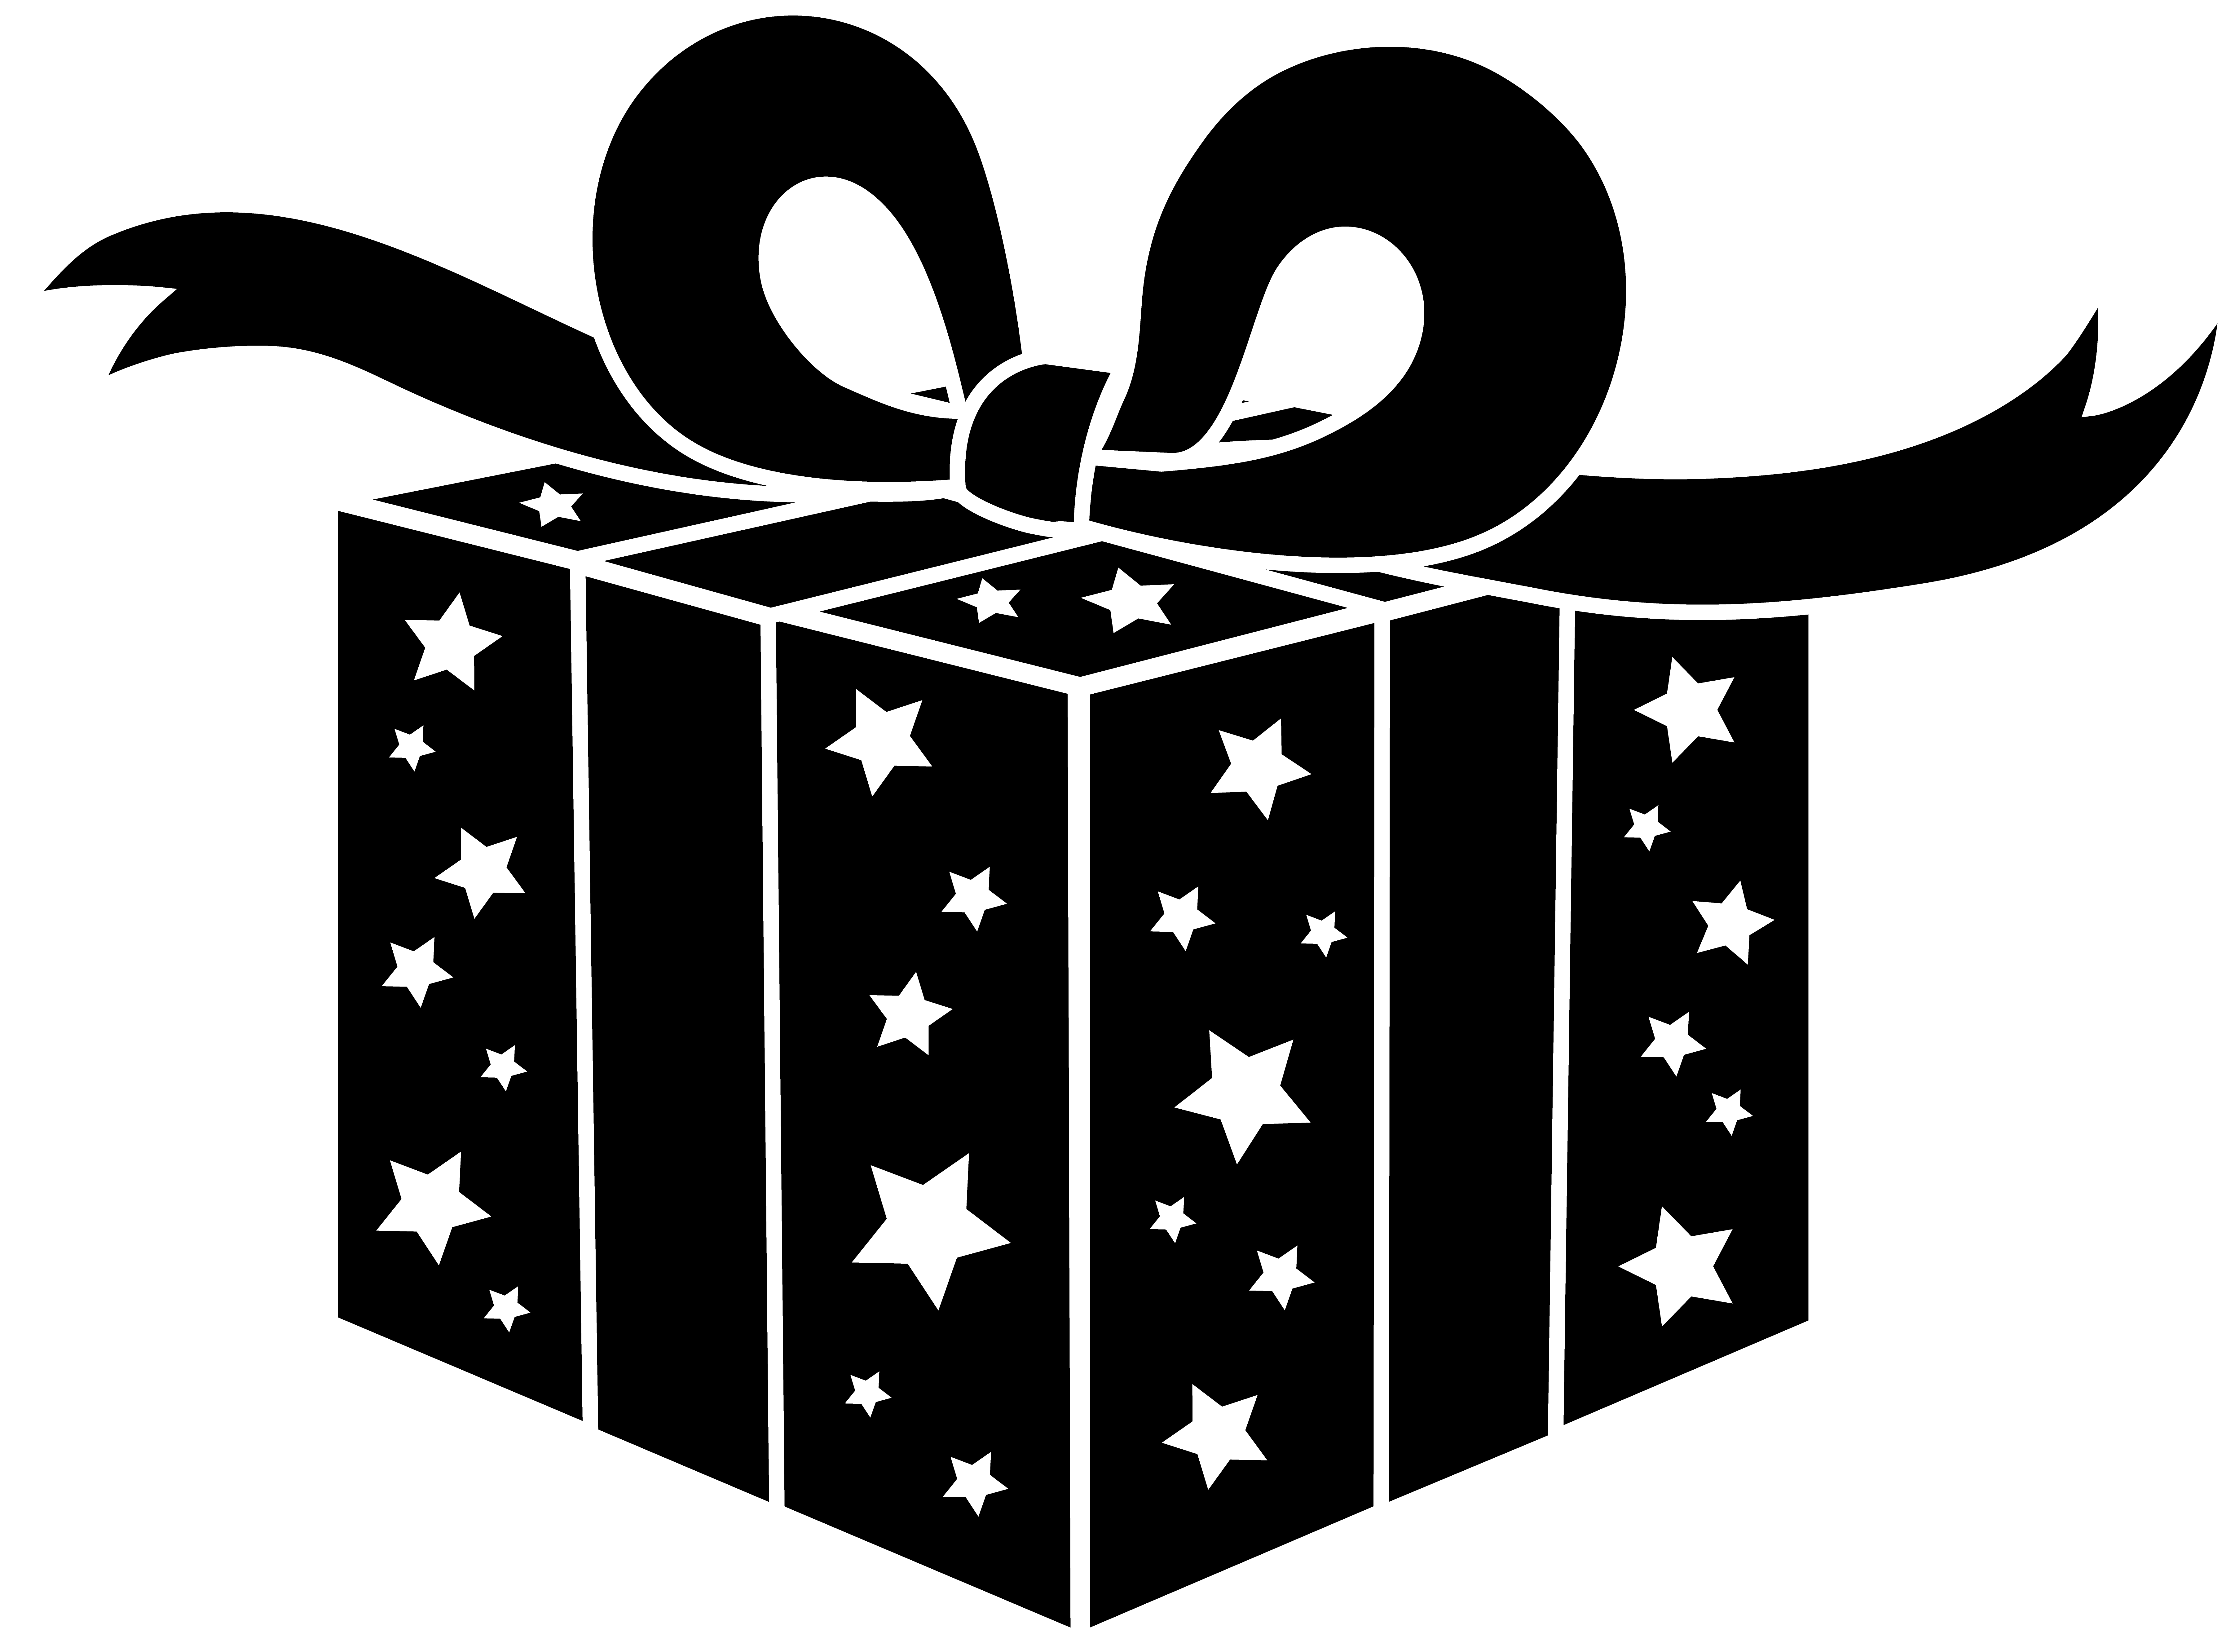 Present clipart party. Black and white gift